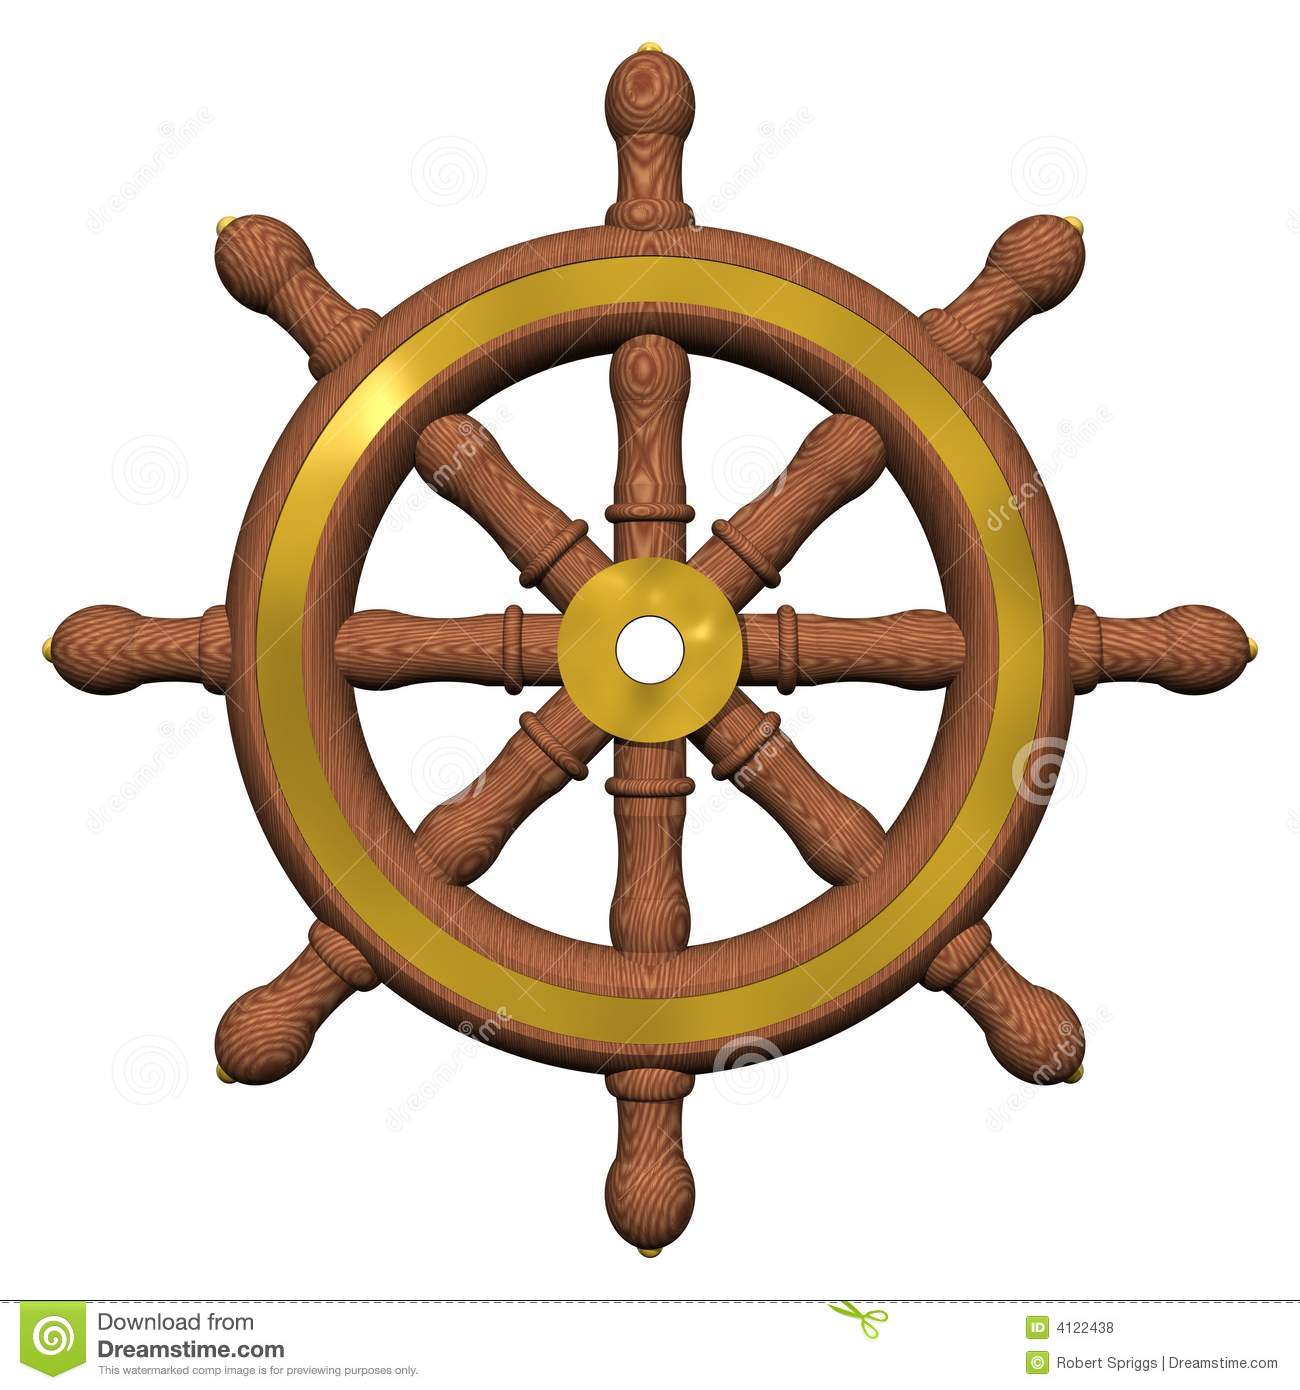 clipart ship steering wheel - photo #37